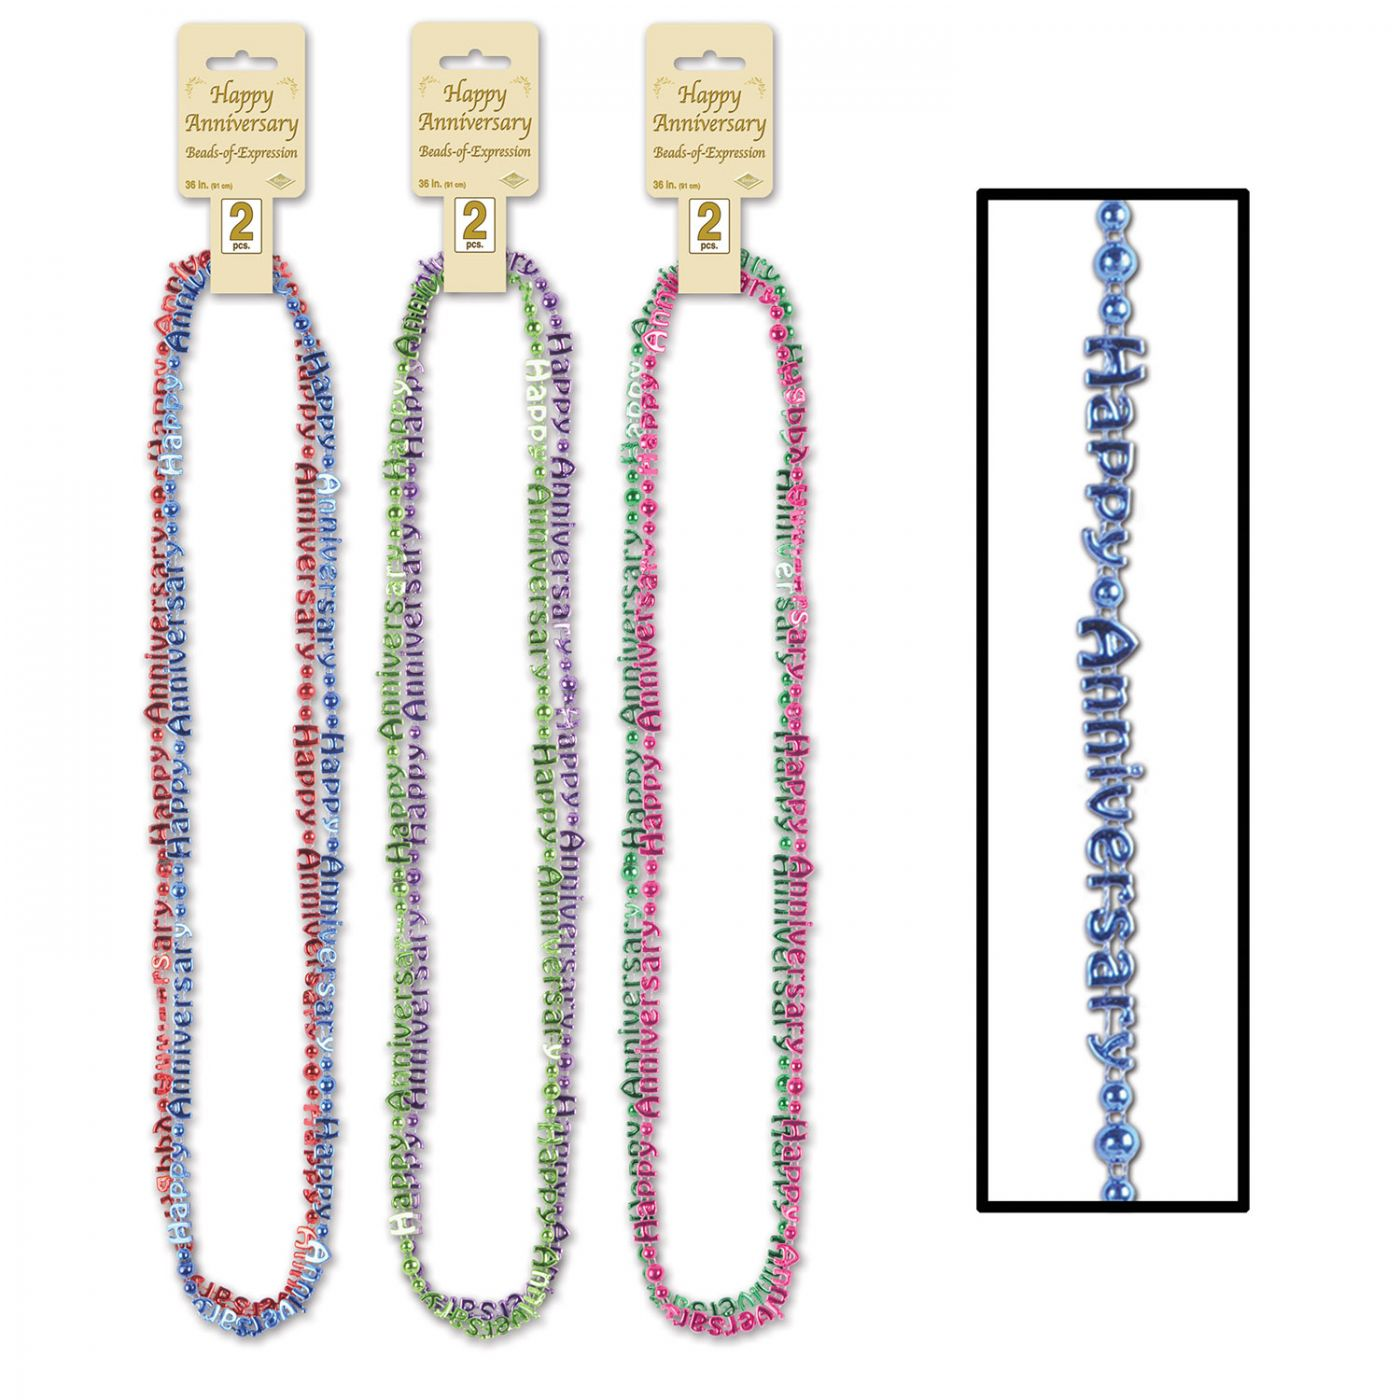 Happy Anniversary Beads-Of-Expression image